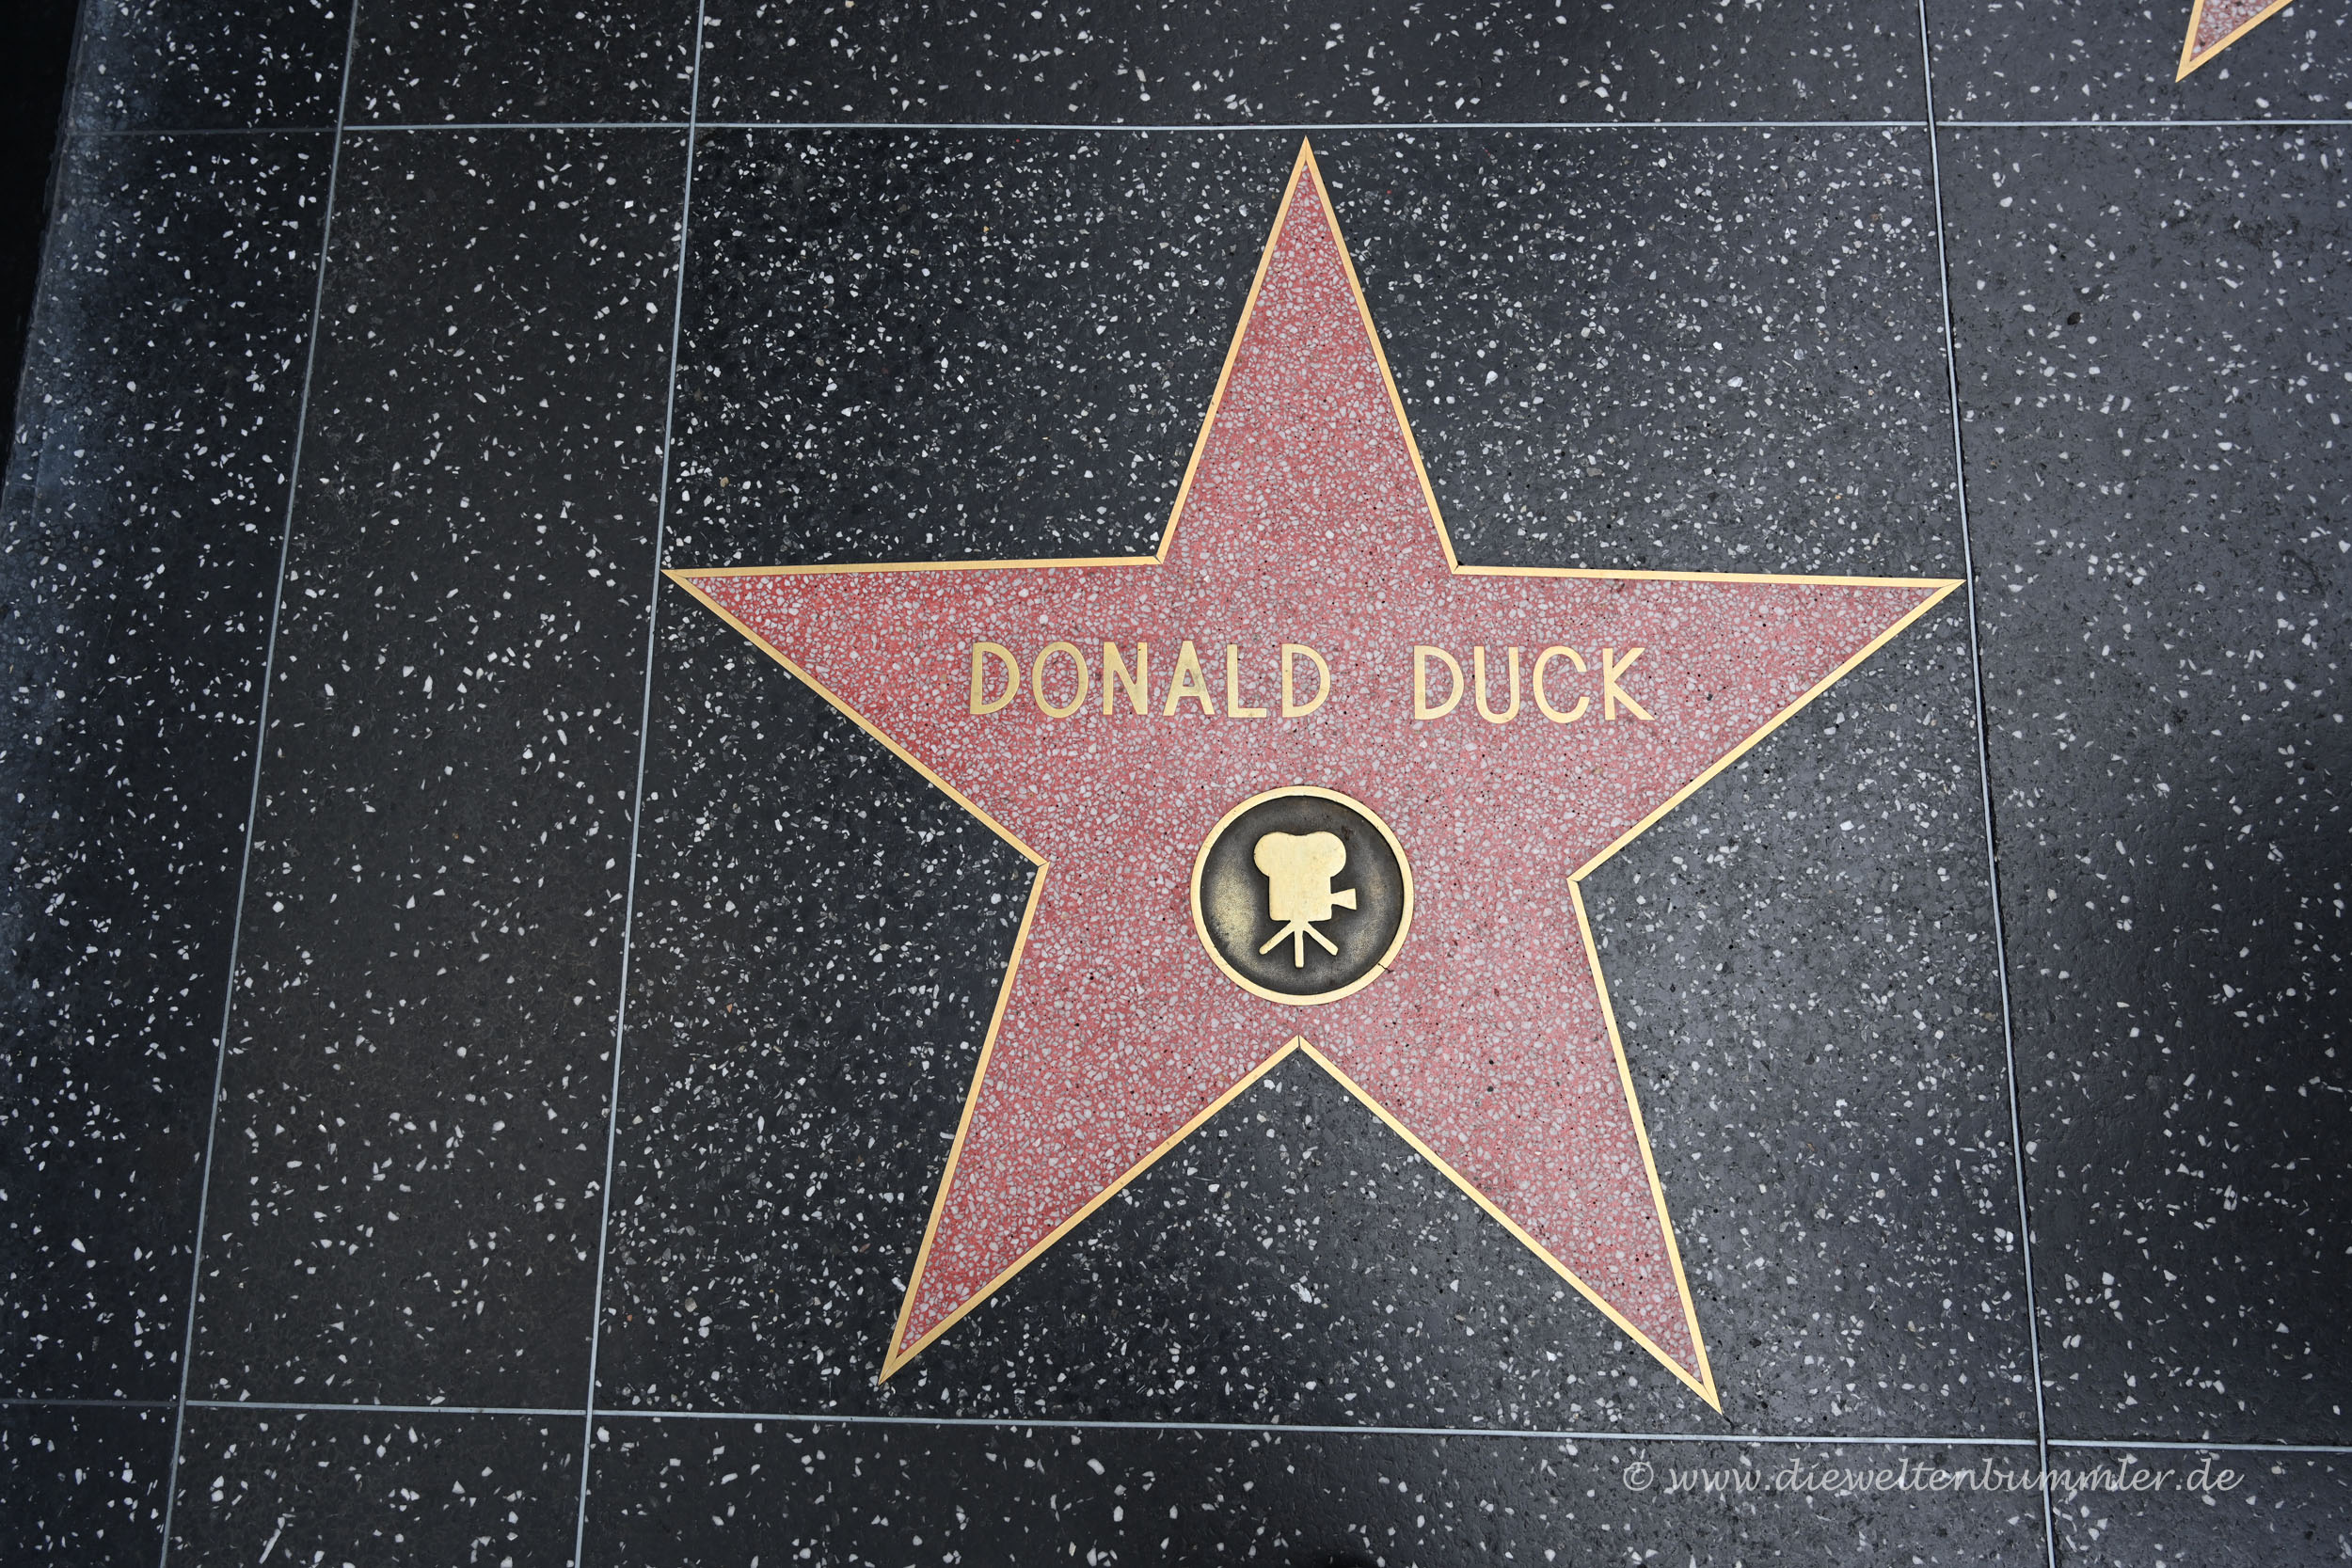 Donald Duck auf dem Walk of Fame